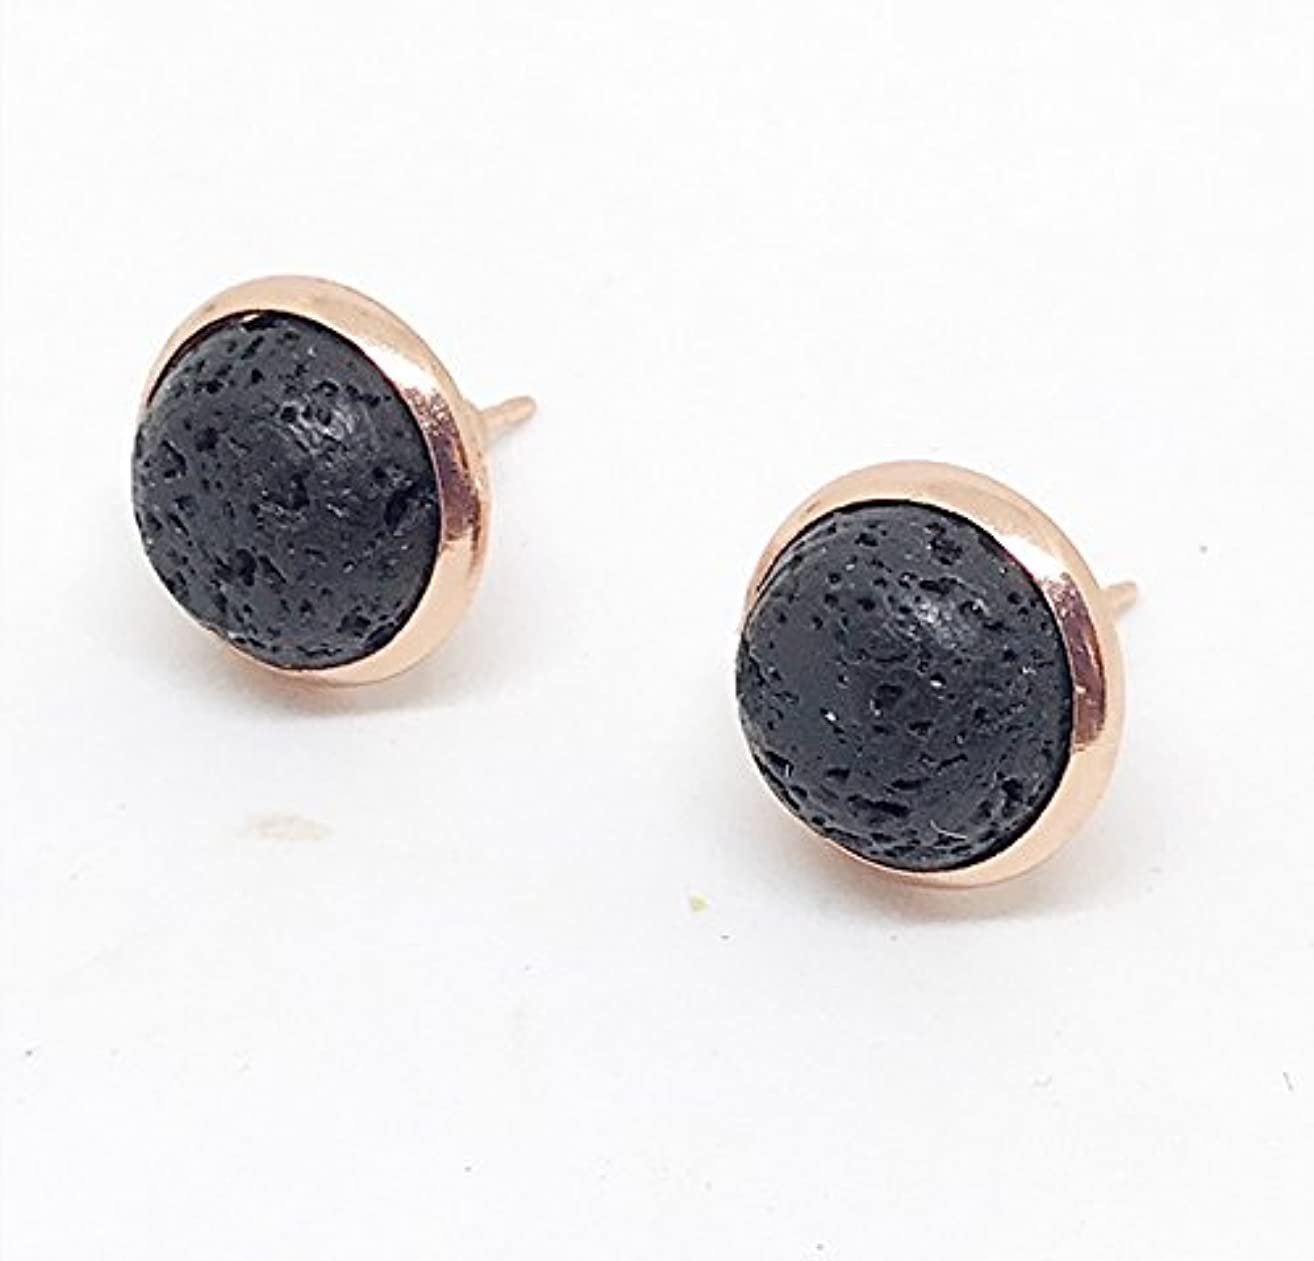 Rose Gold Lava Rock Diffuser Earrings, Diffuser Jewelry, Lava Rock Earrings, Lava Jewelry, Gifts for Her, Aromatherapy Jewelry, Essential Oil Accessories, Post Earrings, Stud Earrings,